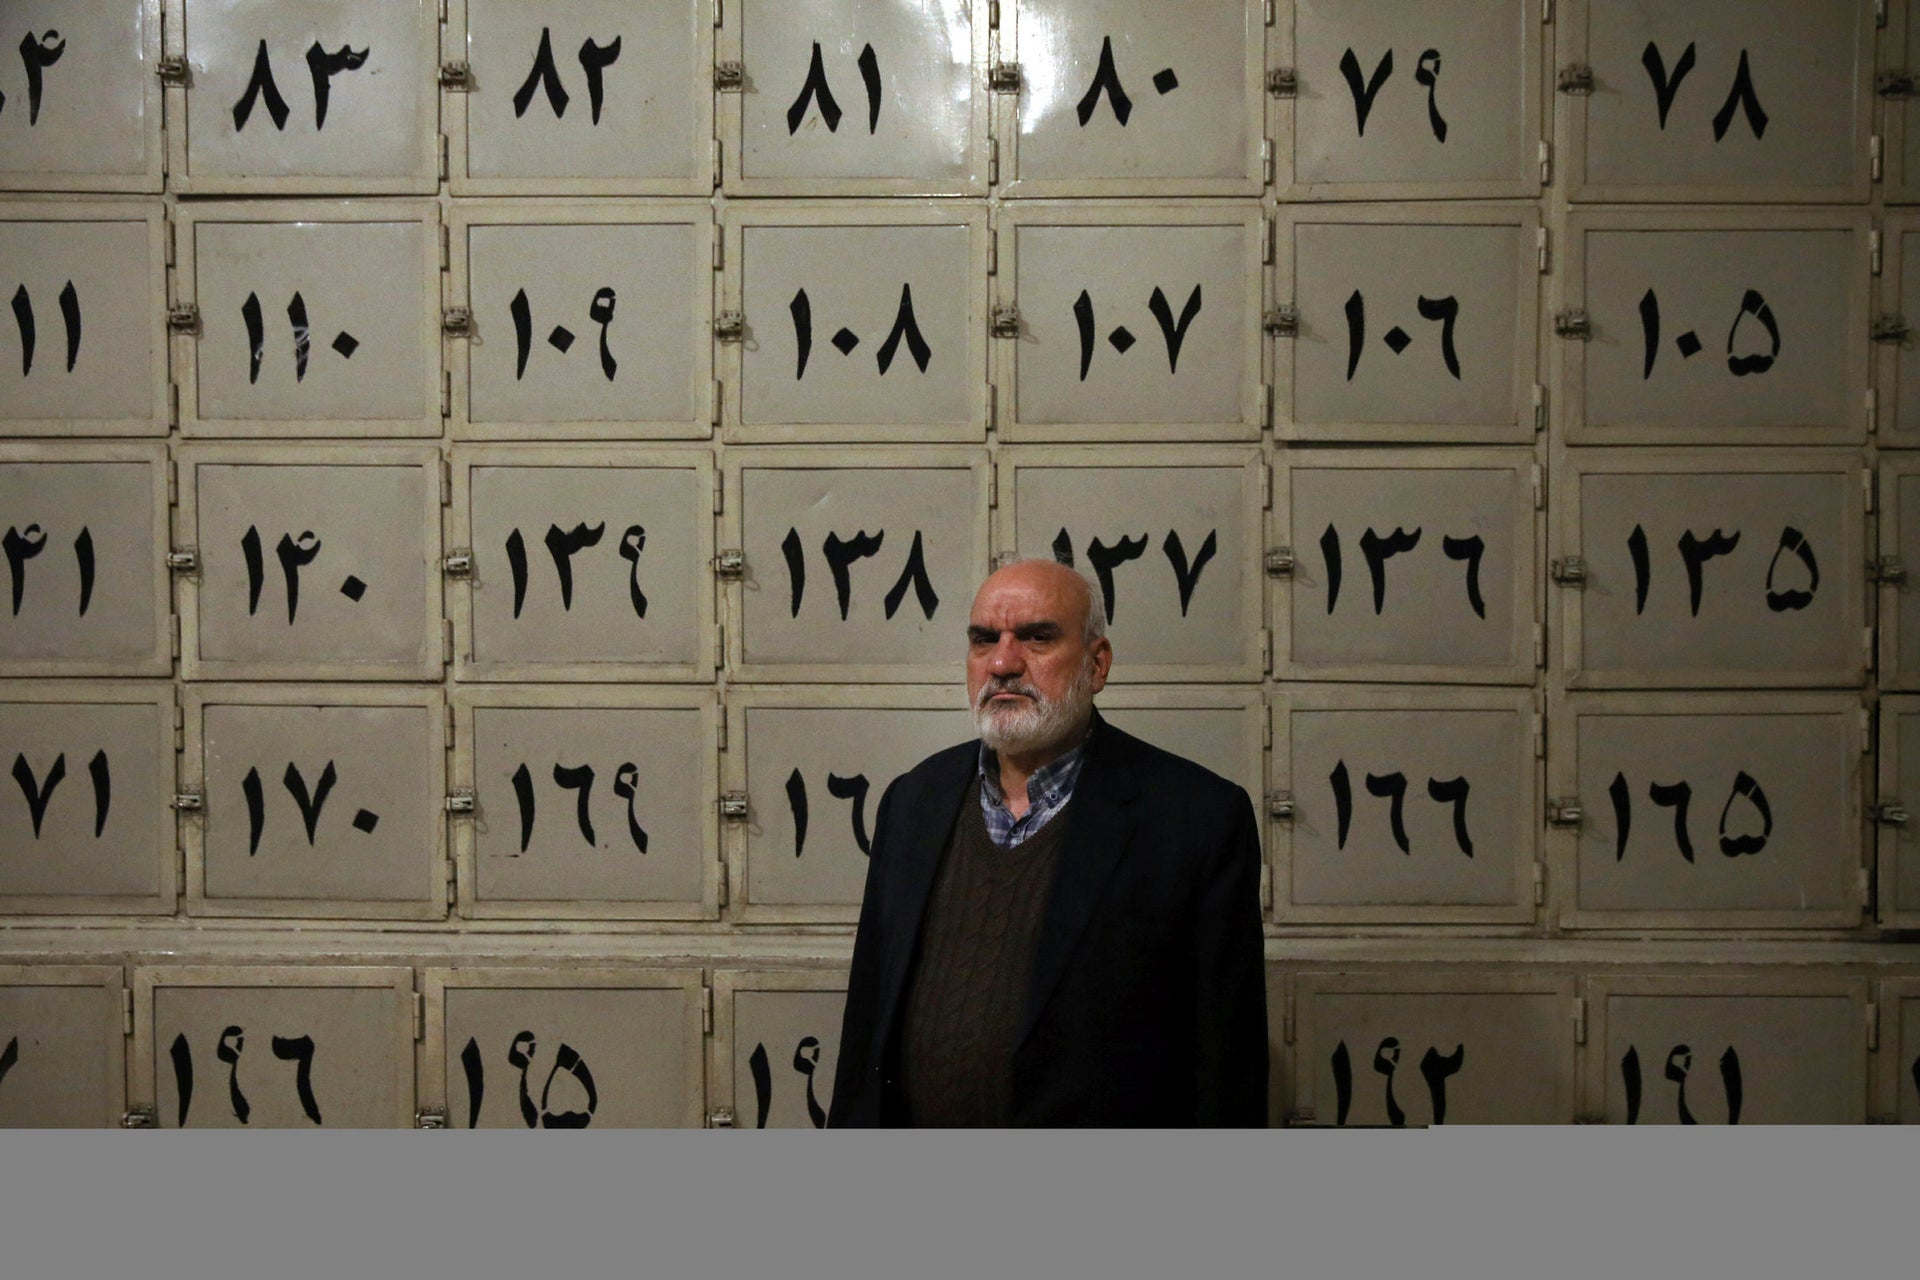 Ahmad Sheikhi, a 63-year-old former revolutionary, poses for a photo at a former SAVAK prison where he was once tortured, in Tehran, Iran, January 7, 2019.